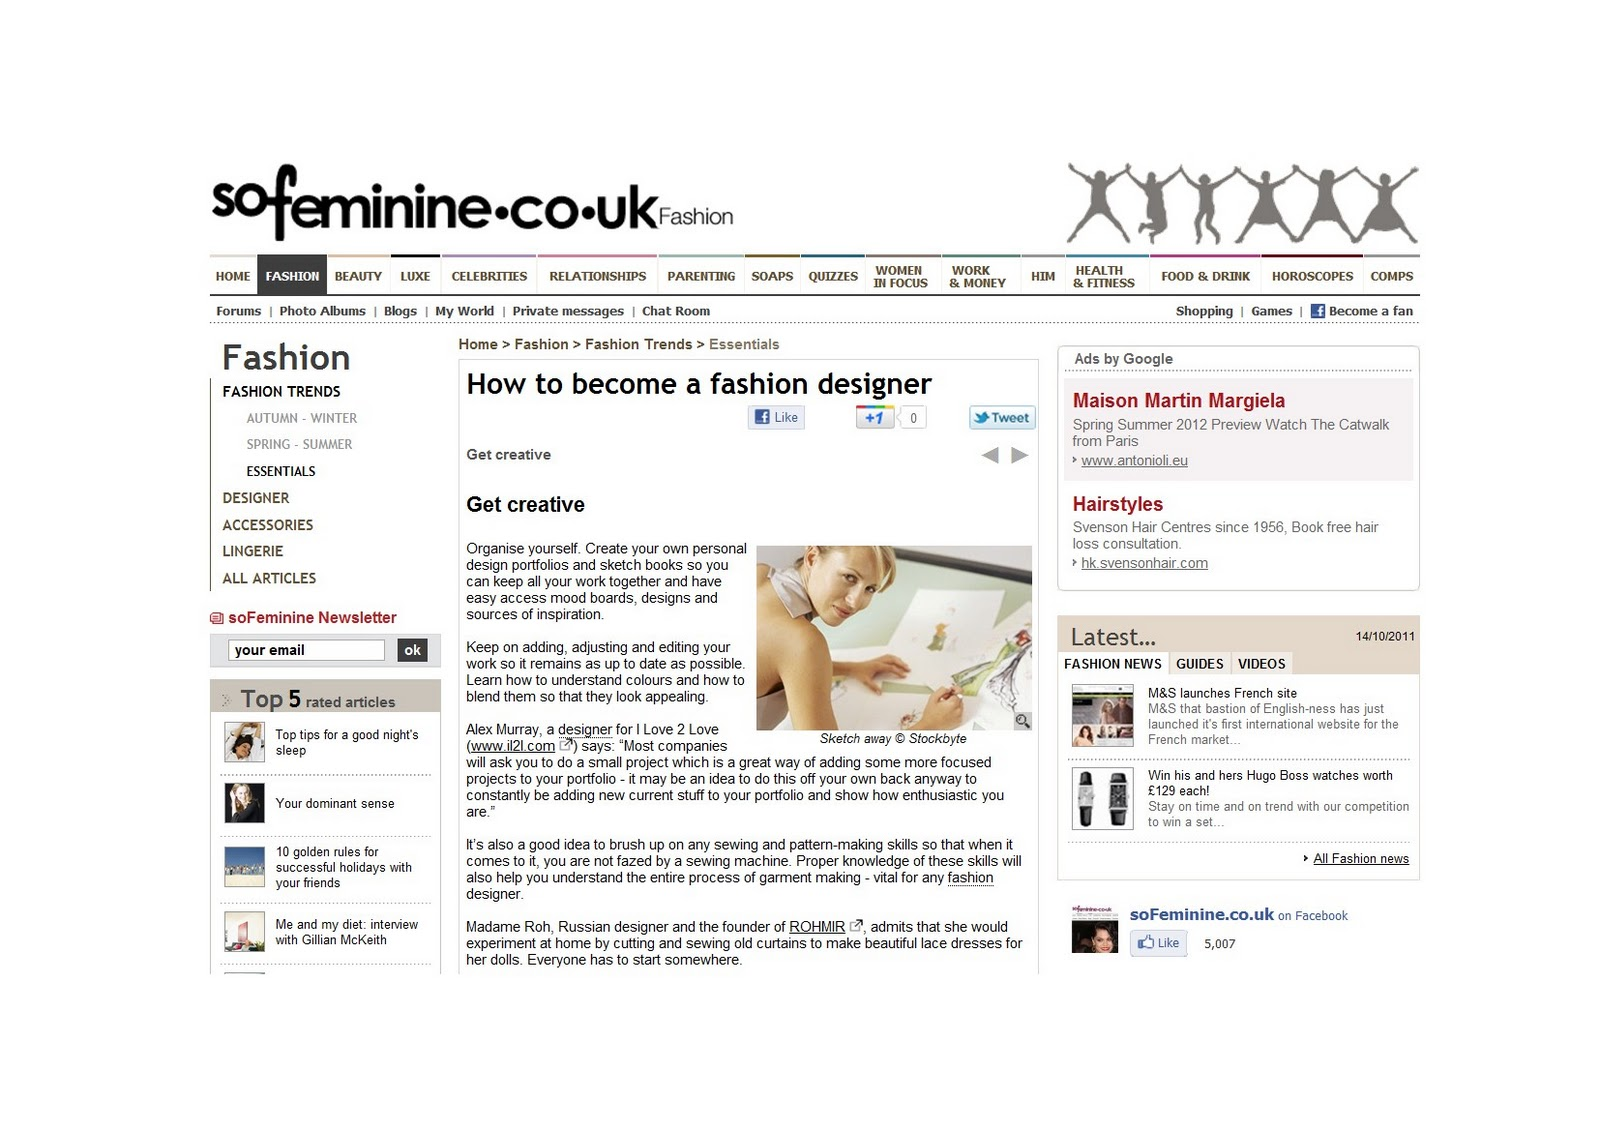 SoFeminine_co_uk 14 Oct 2011 -Rohmir